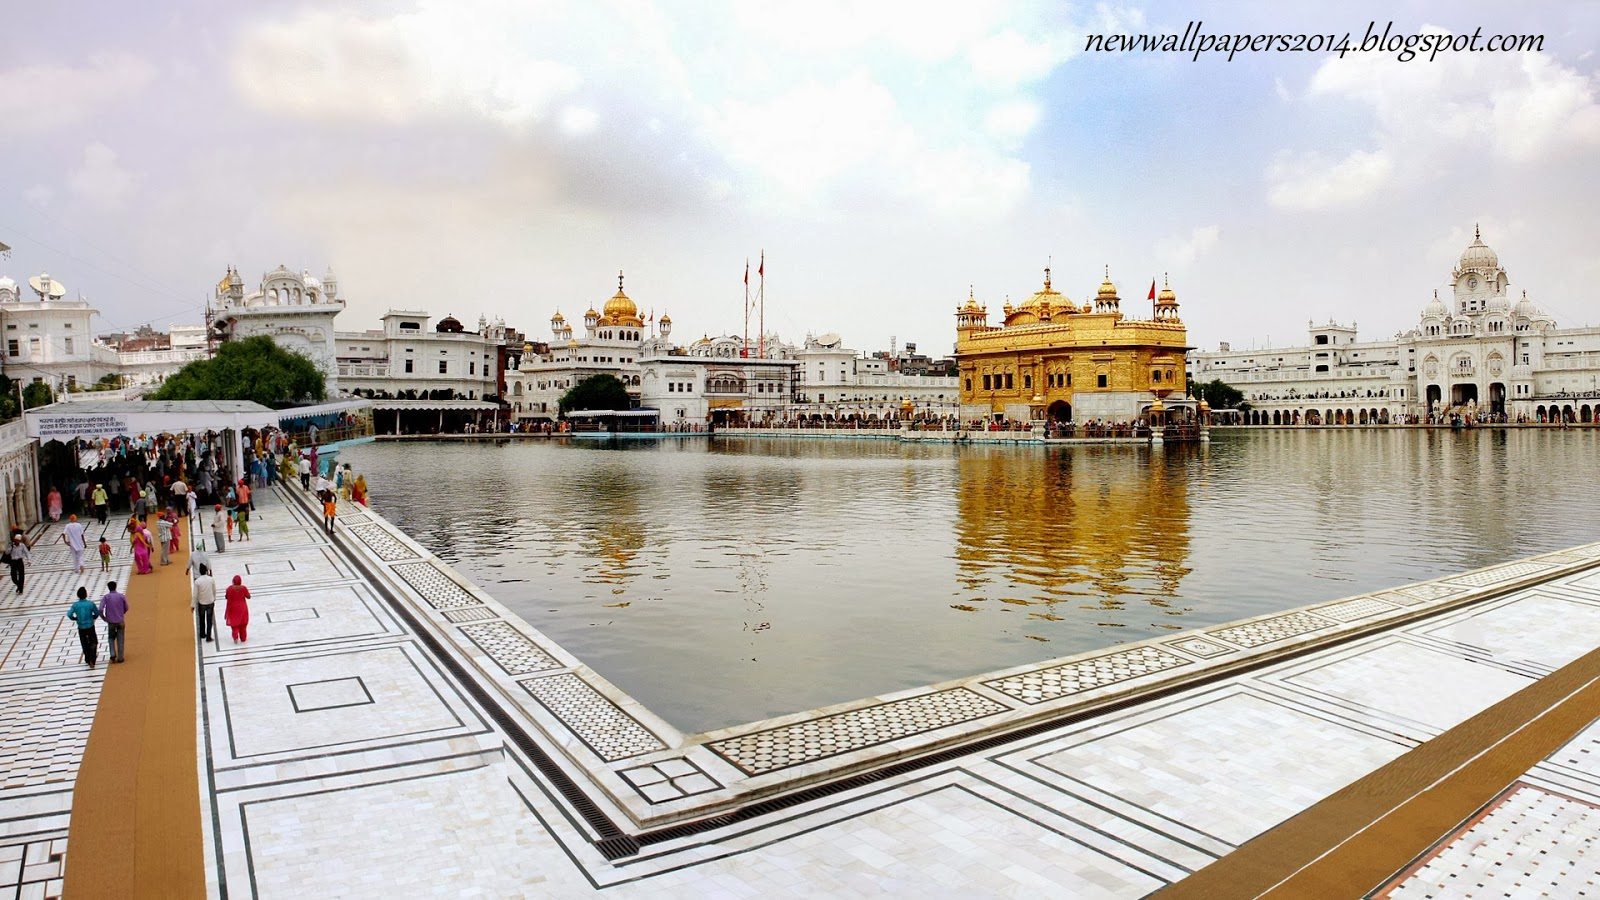 The golden temple harmandir sahib hd wallpapers 2014 - Golden temple images hd download ...